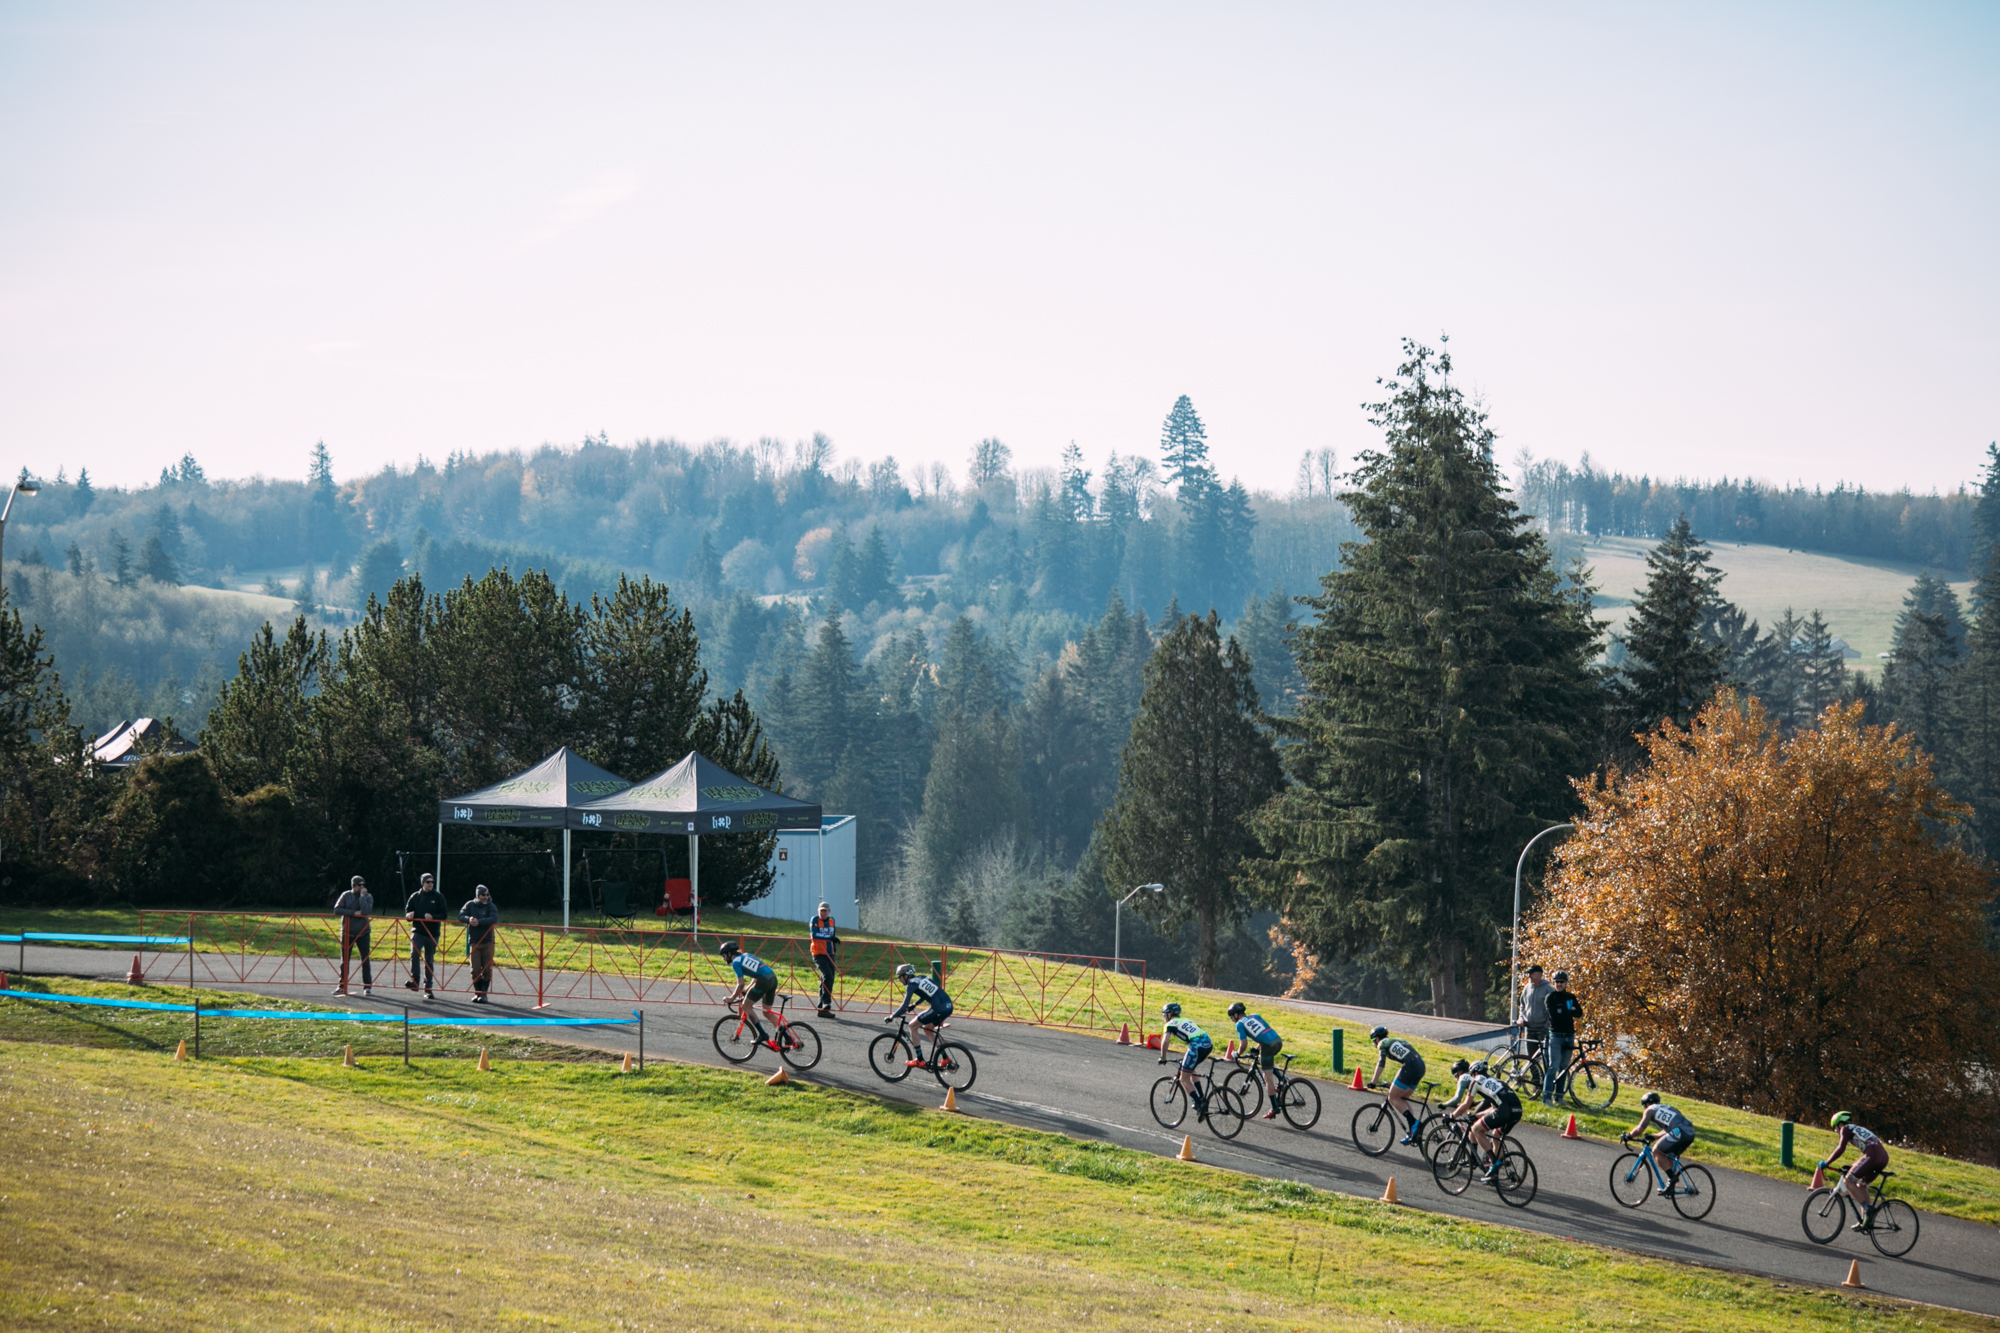 Cyclocross18_CCCX_RainierHS-37-mettlecycling.jpg